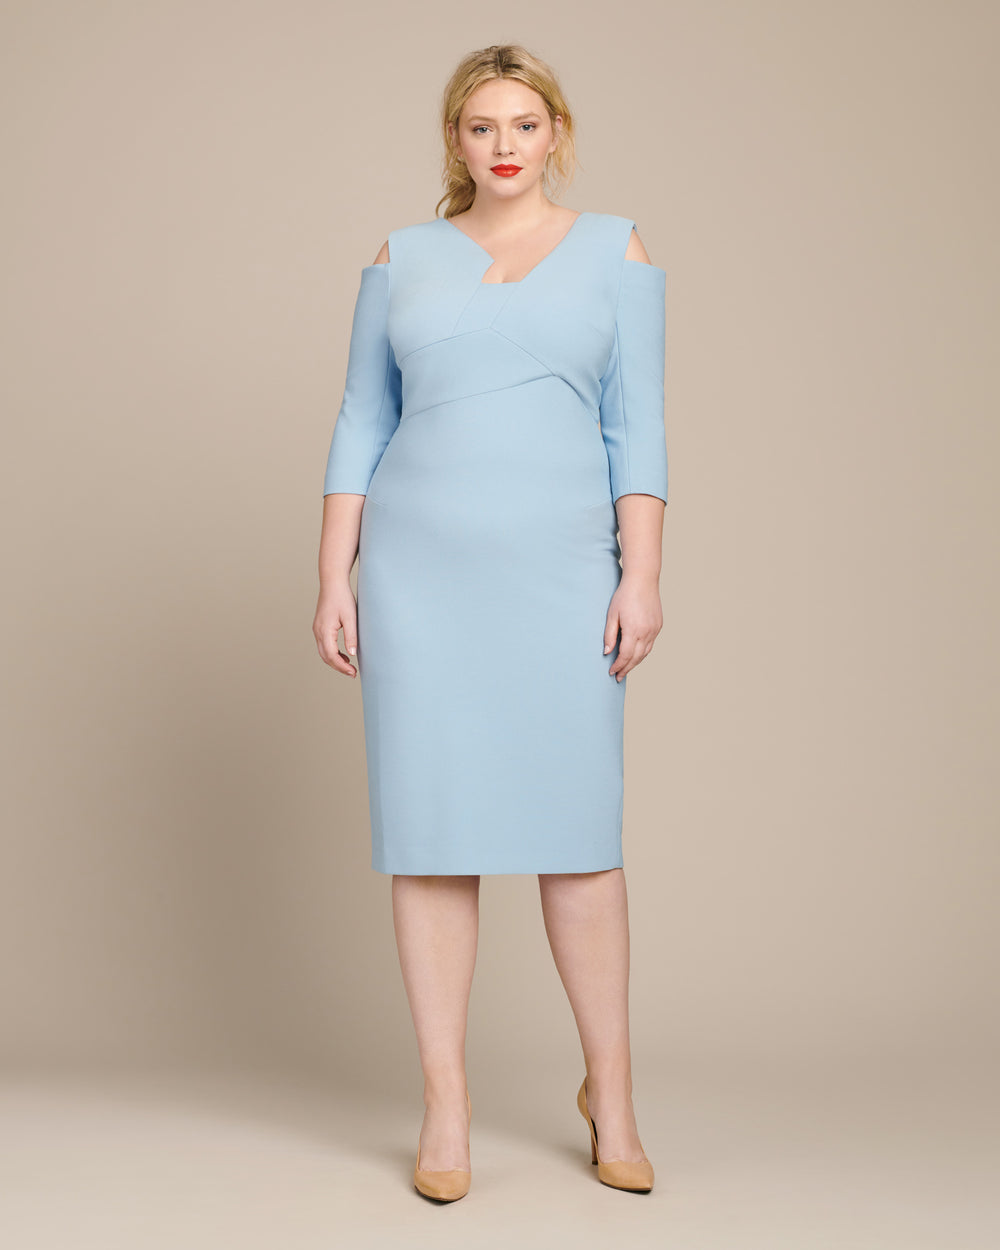 Kiverton Dress